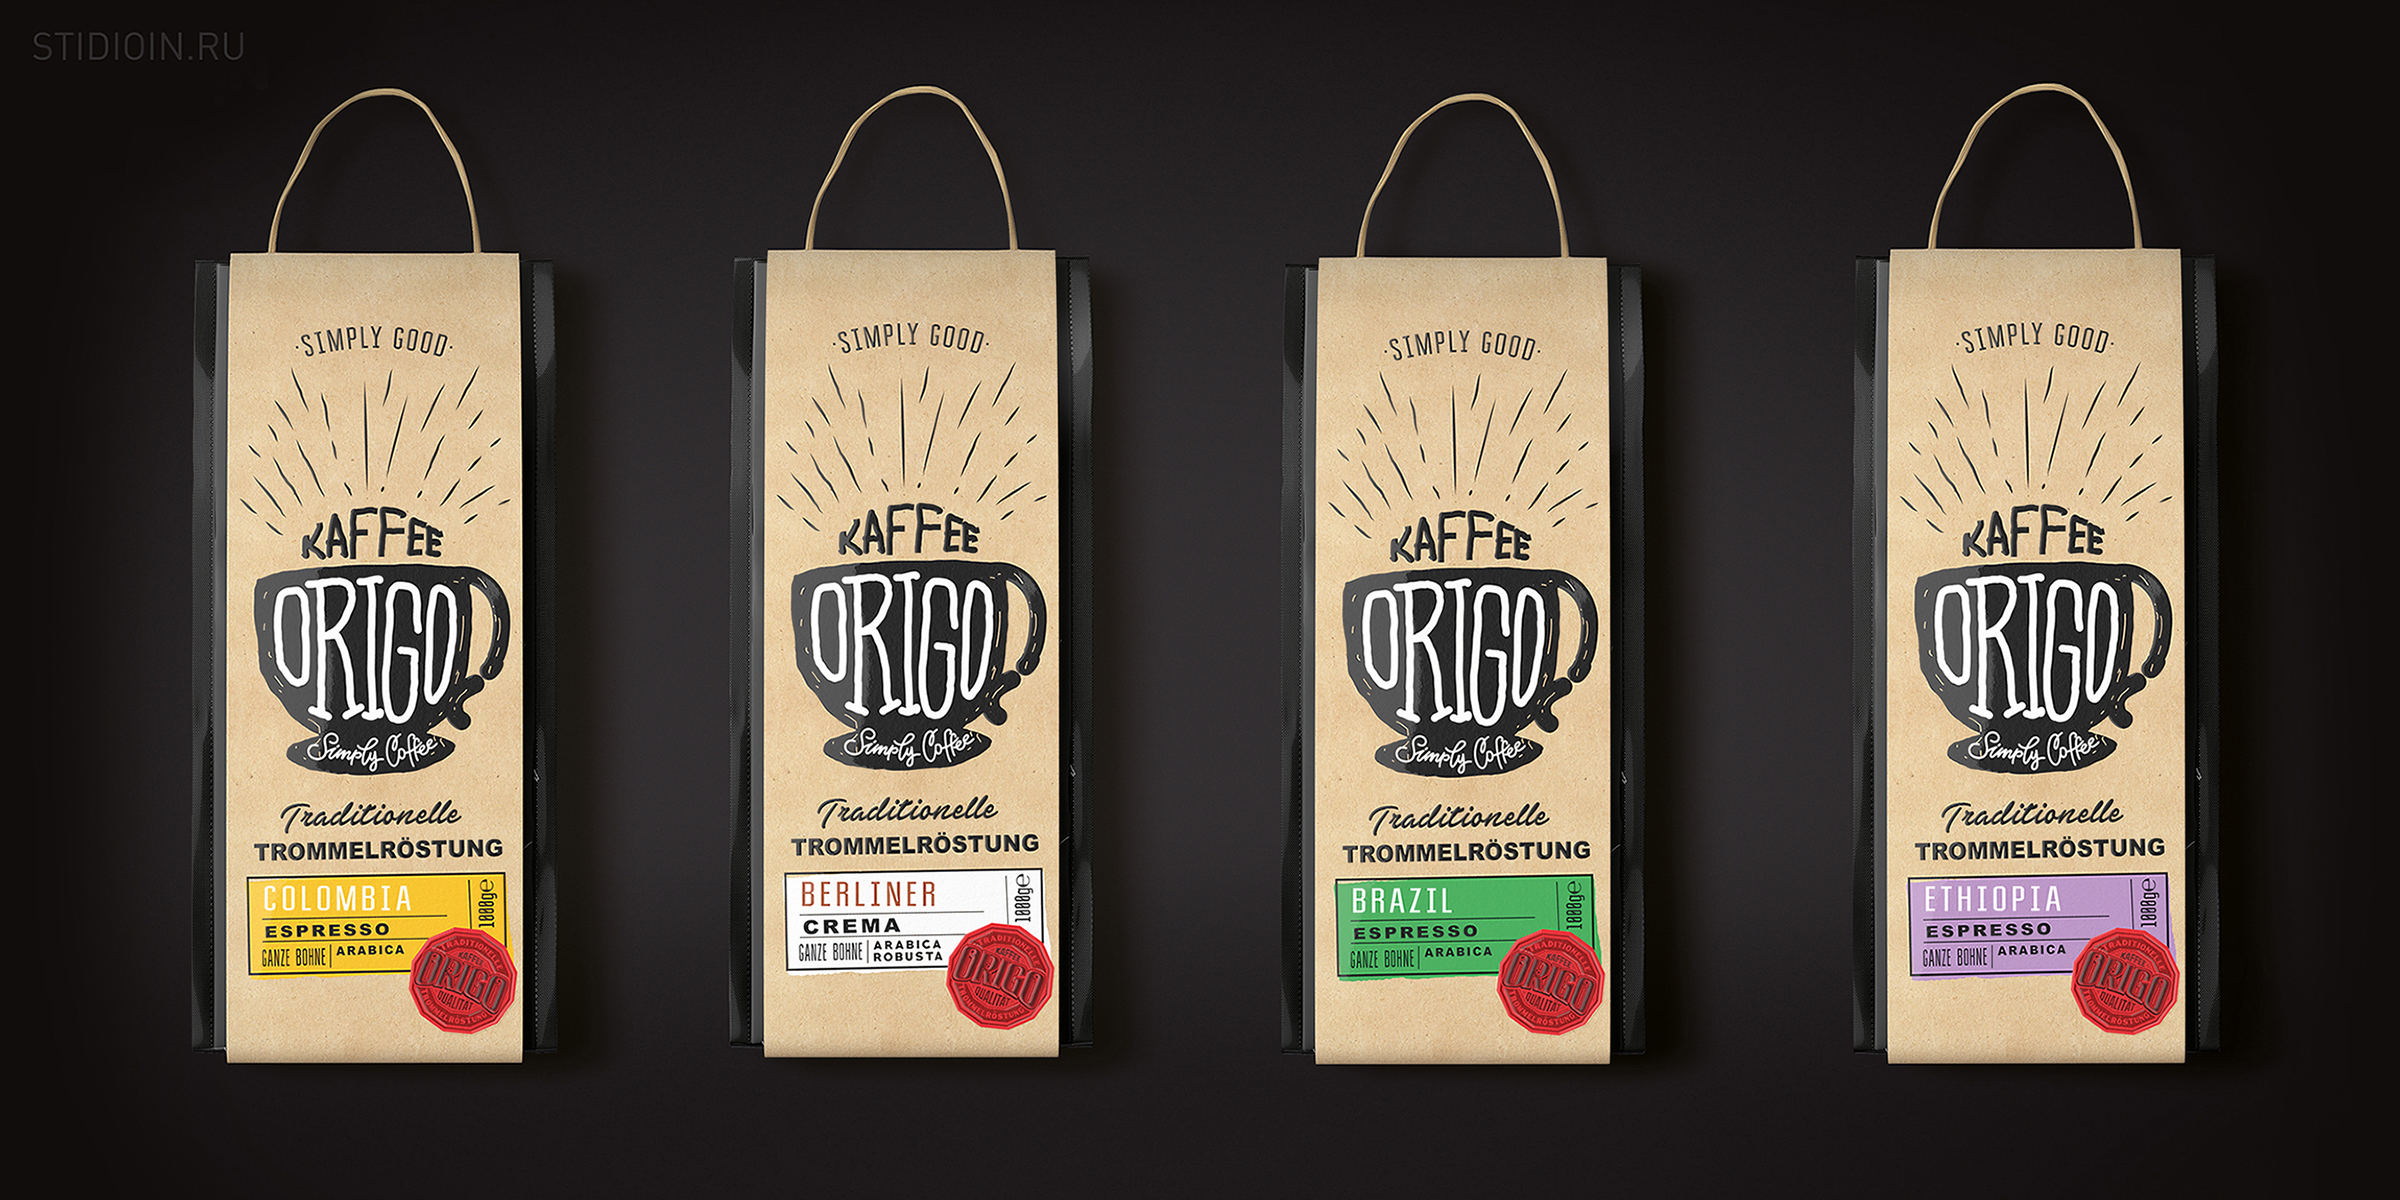 Origo Simply Coffee Brand Identity and Packaging Design by STUDIOIN